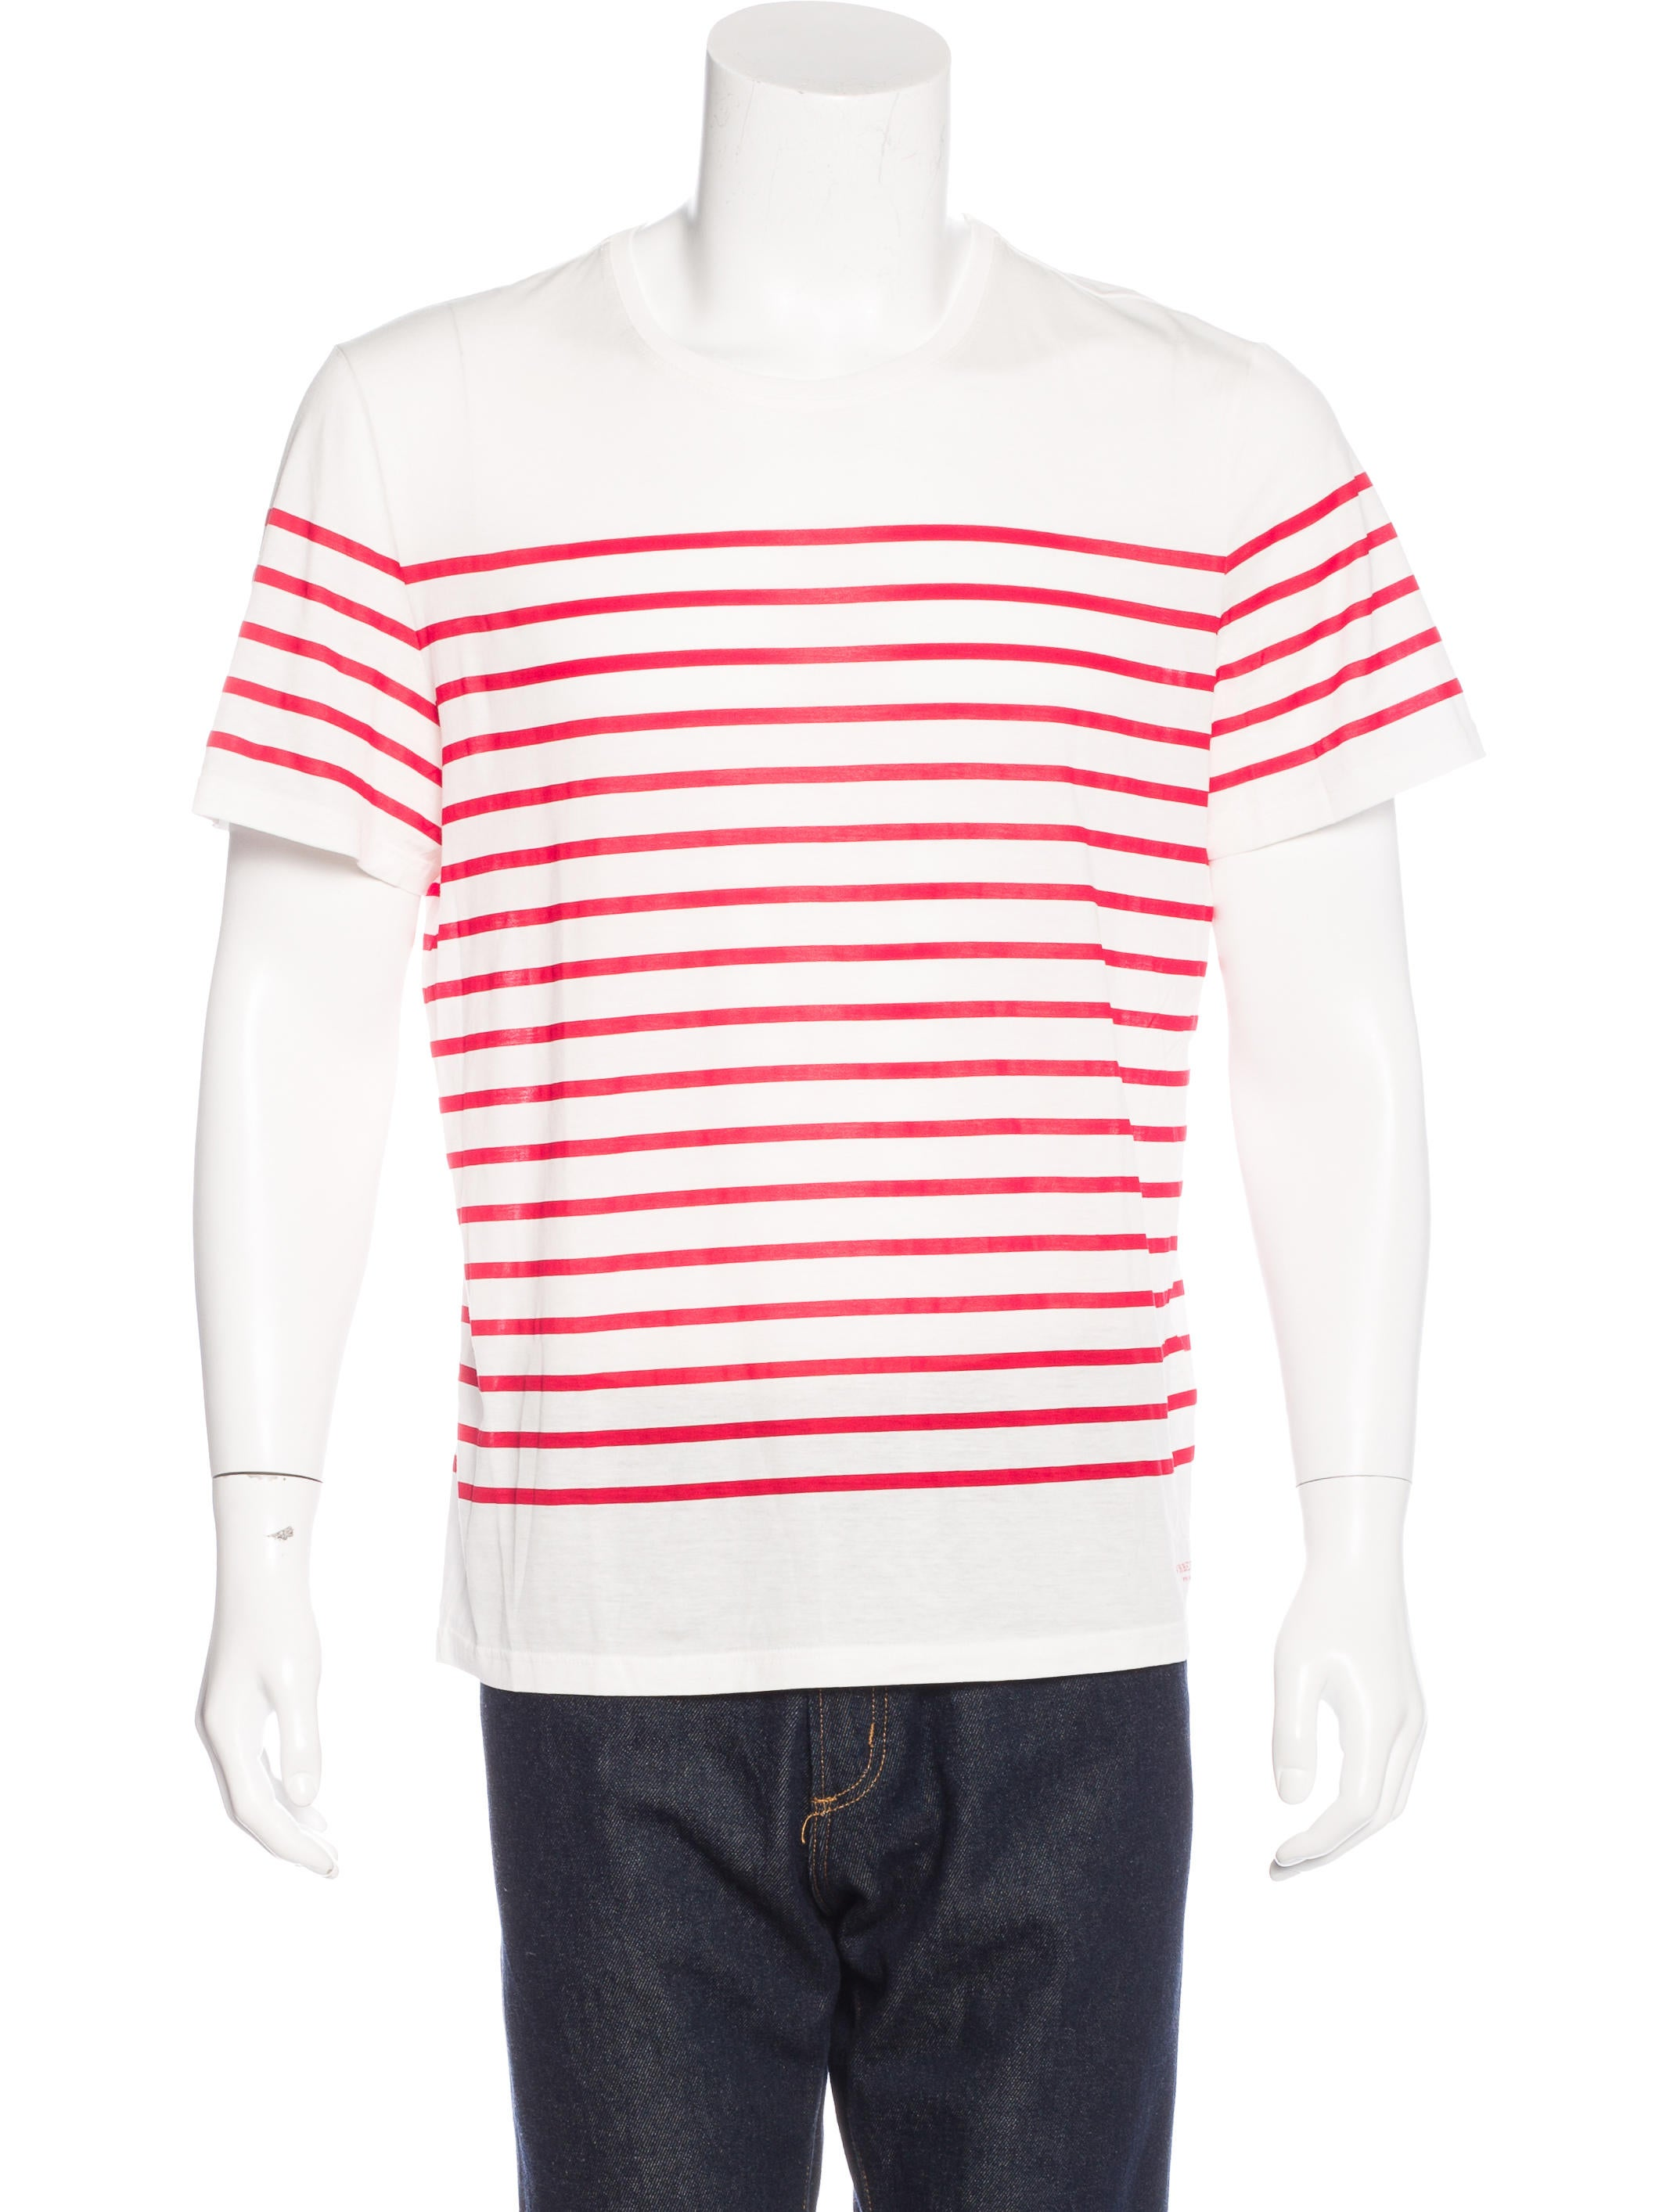 Burberry prorsum striped scoop neck t shirt clothing for Scoop neck t shirt